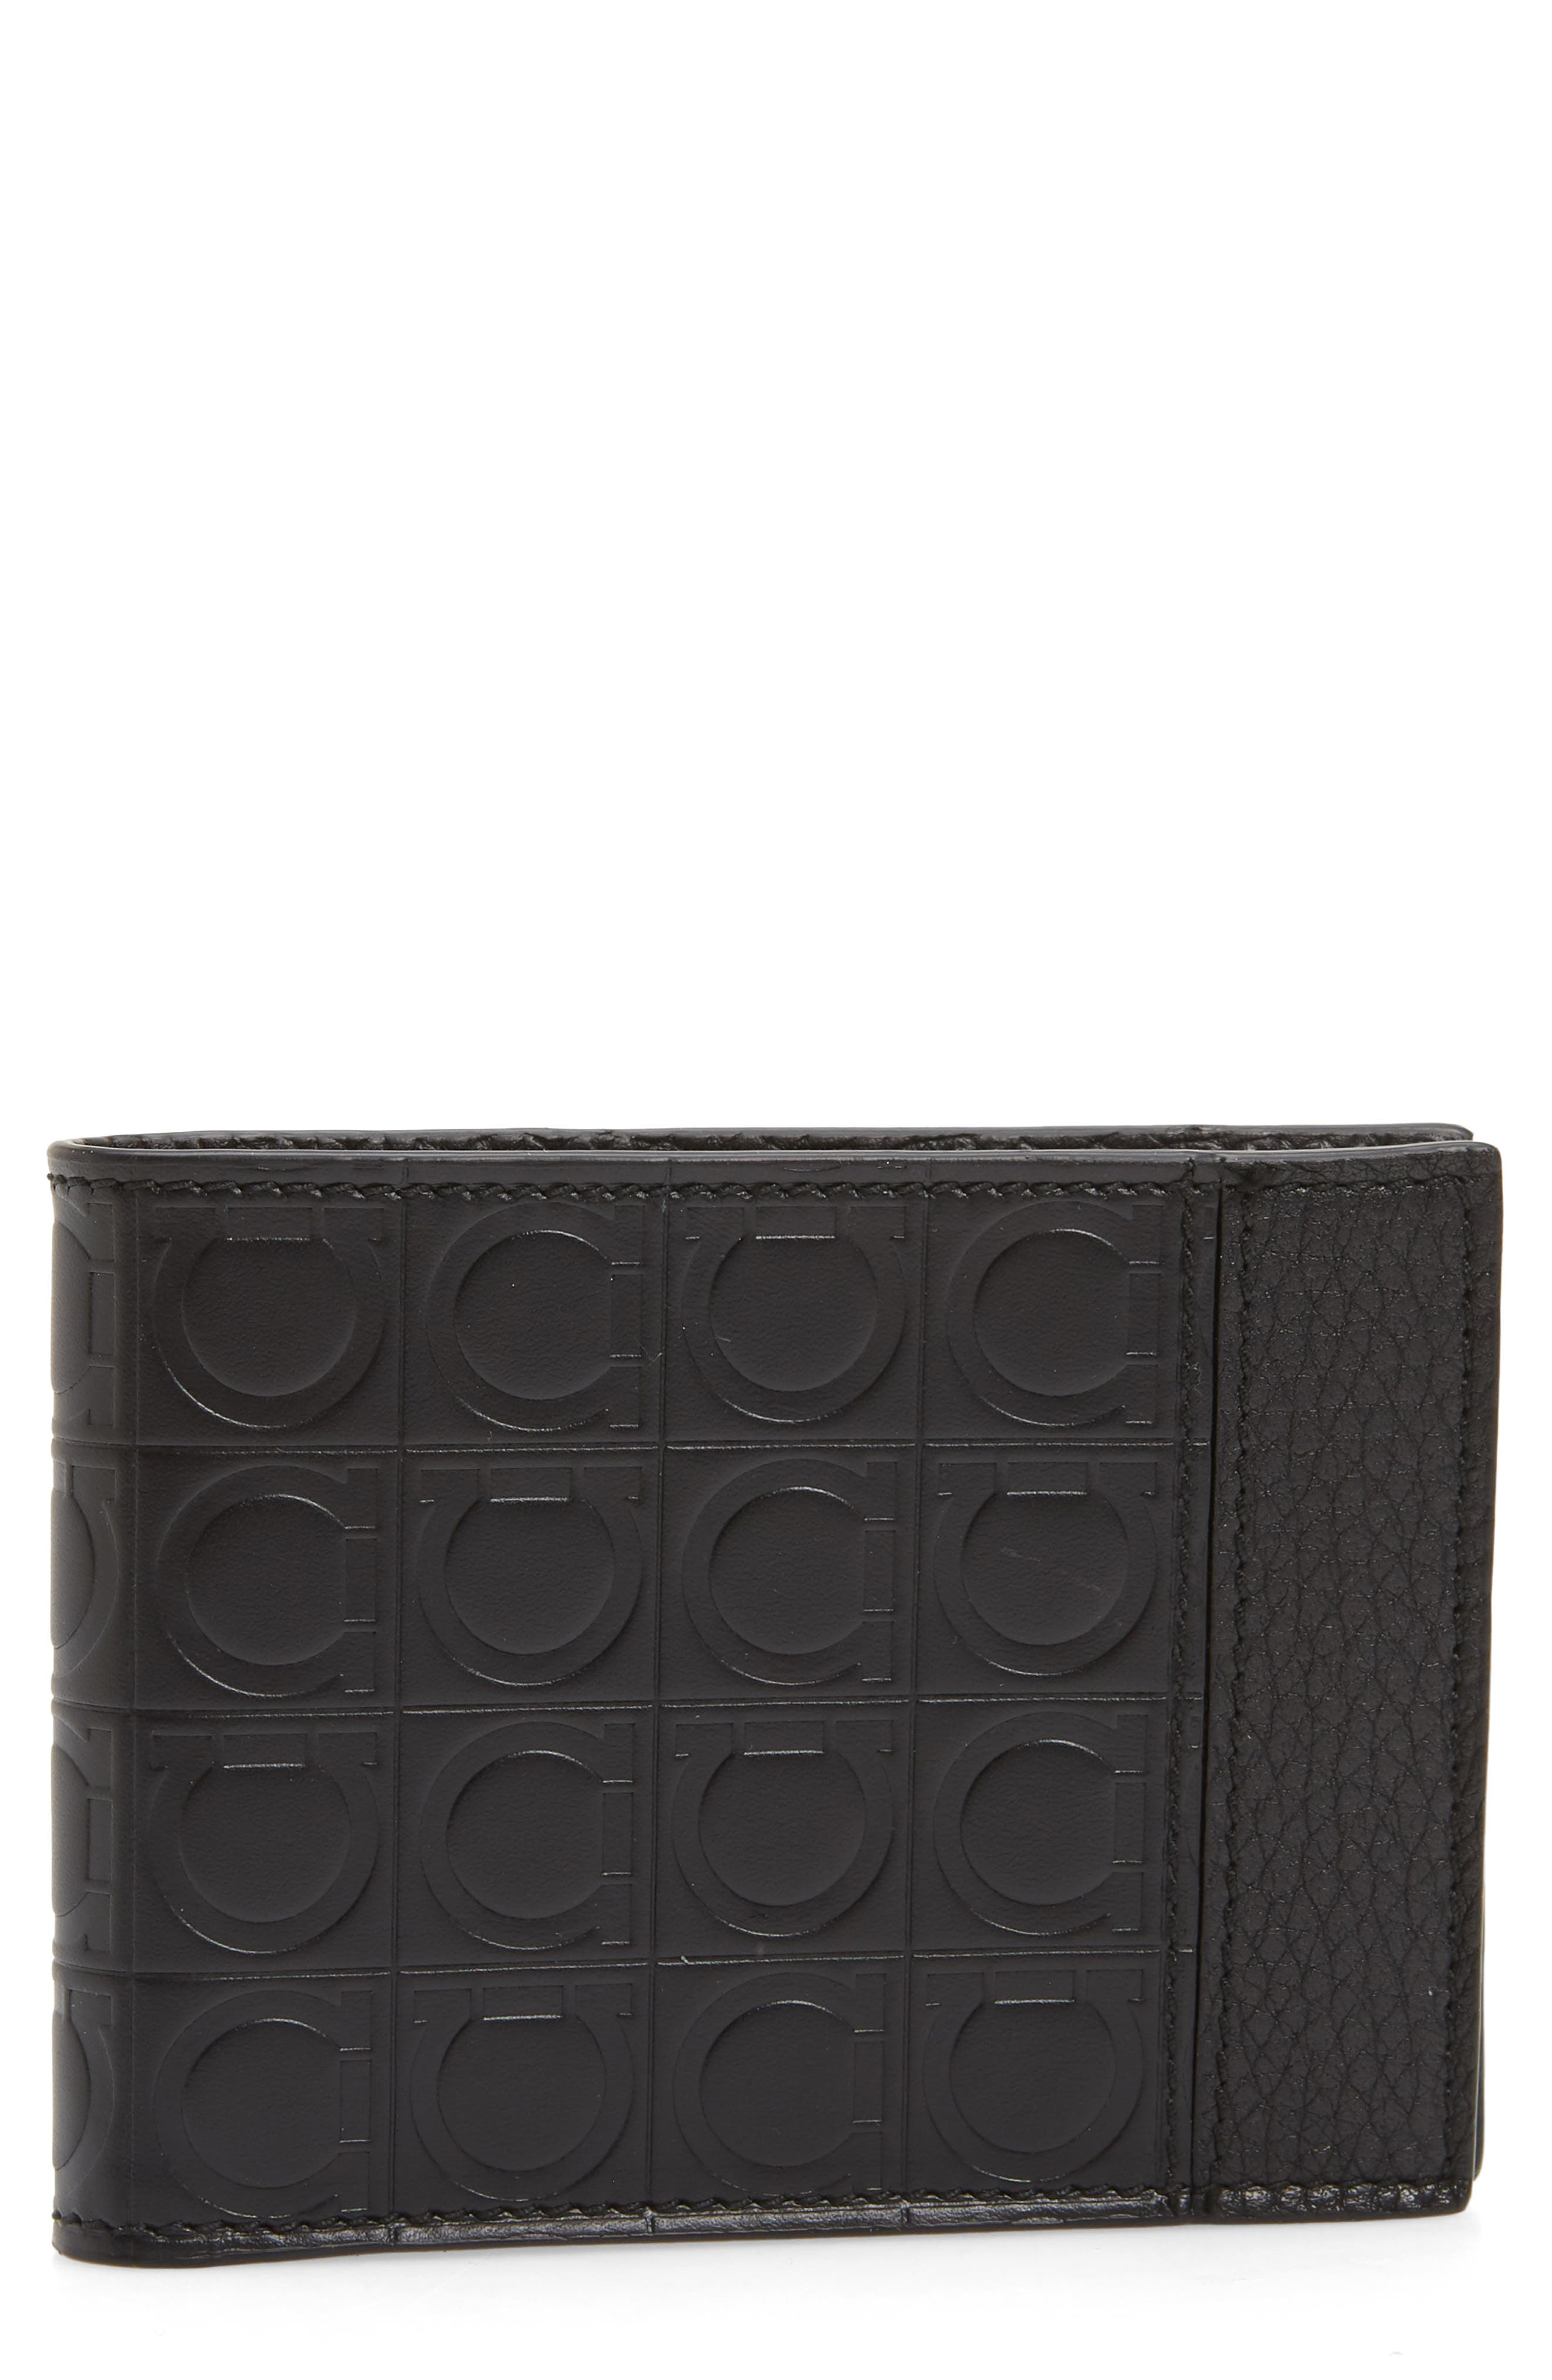 Firenze Gamma Leather Wallet,                             Main thumbnail 1, color,                             BLACK